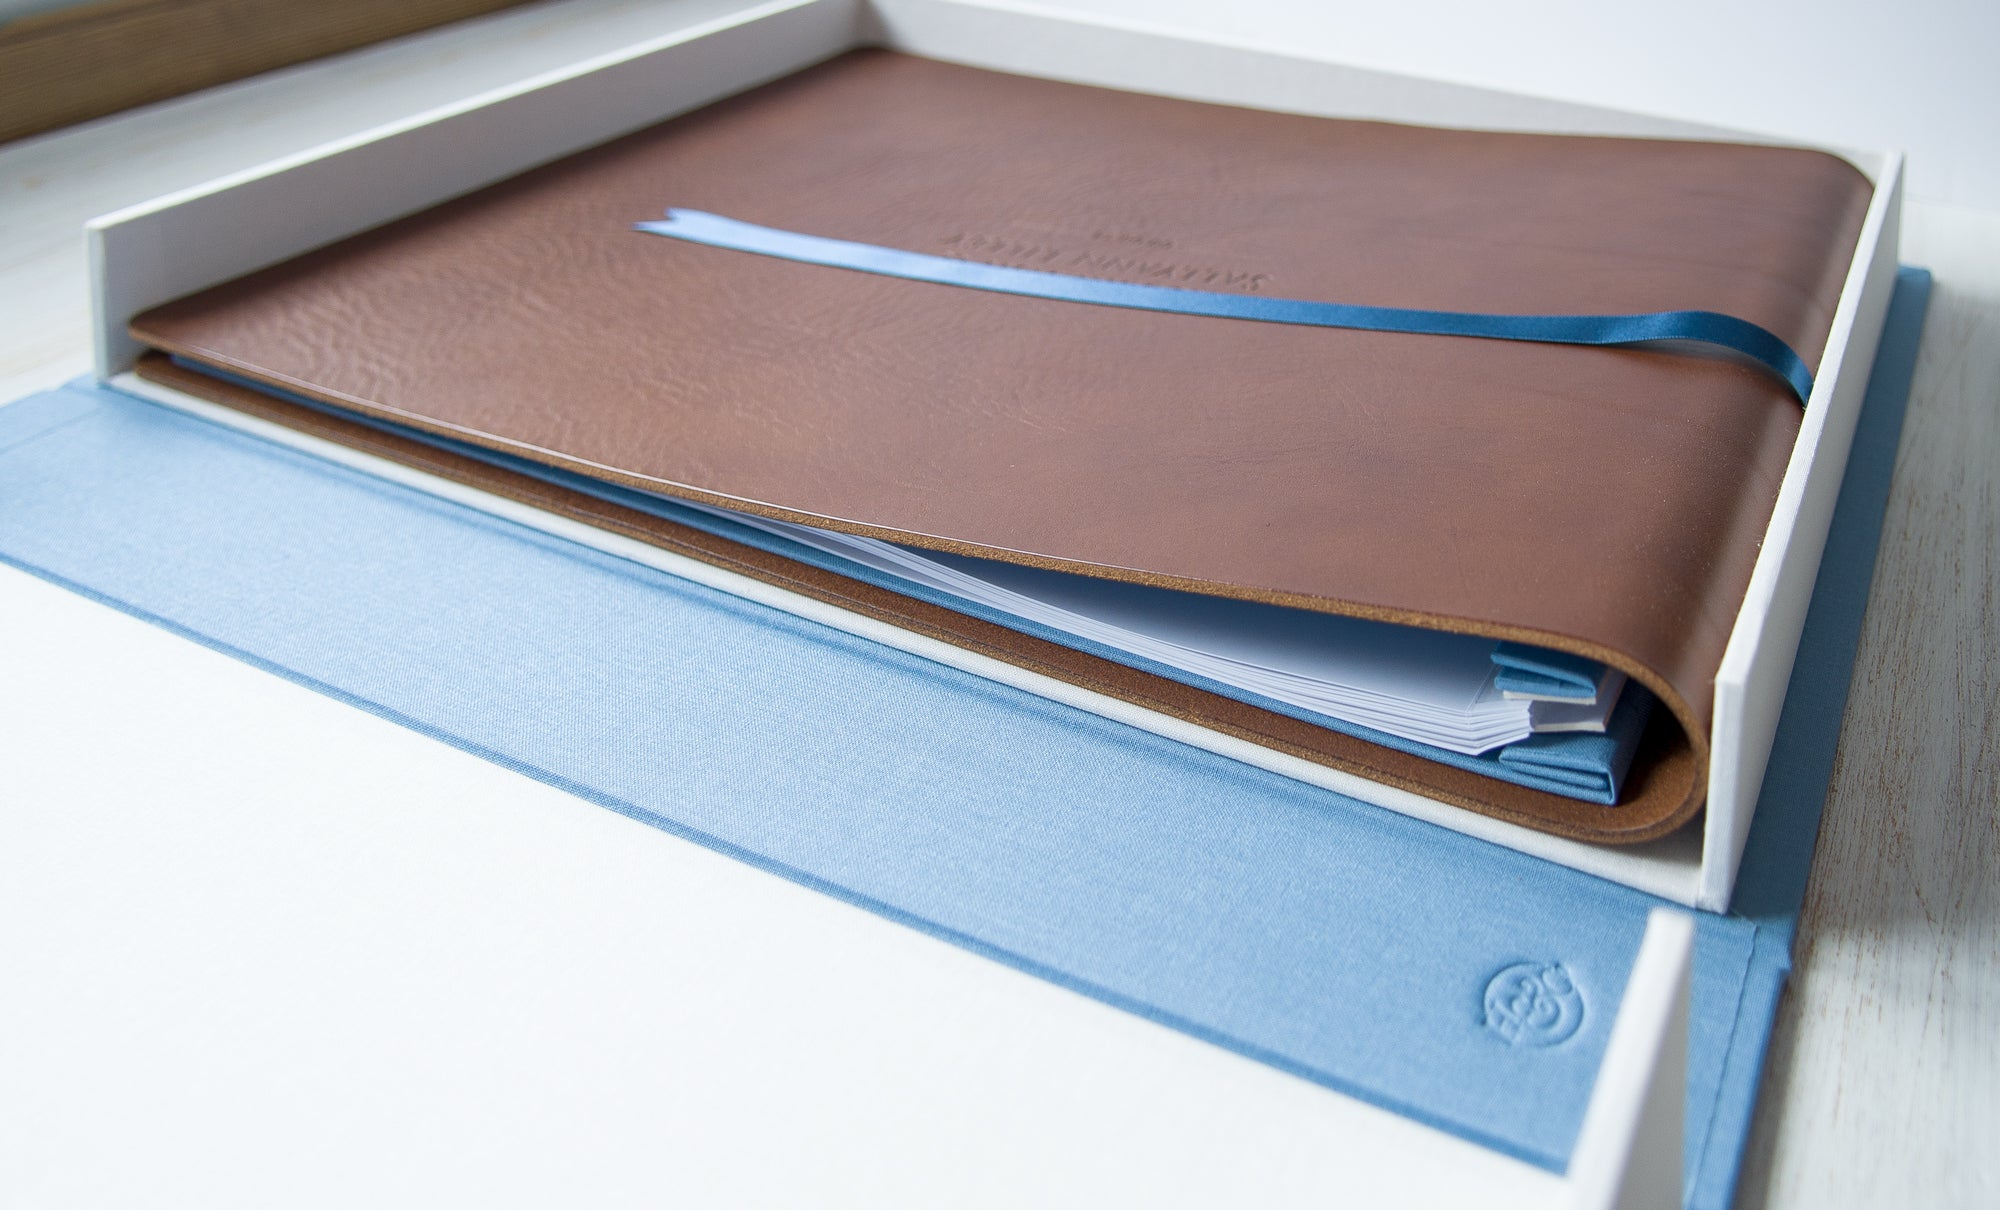 A3 leather wedding album sitting in A3 Clamshell Box